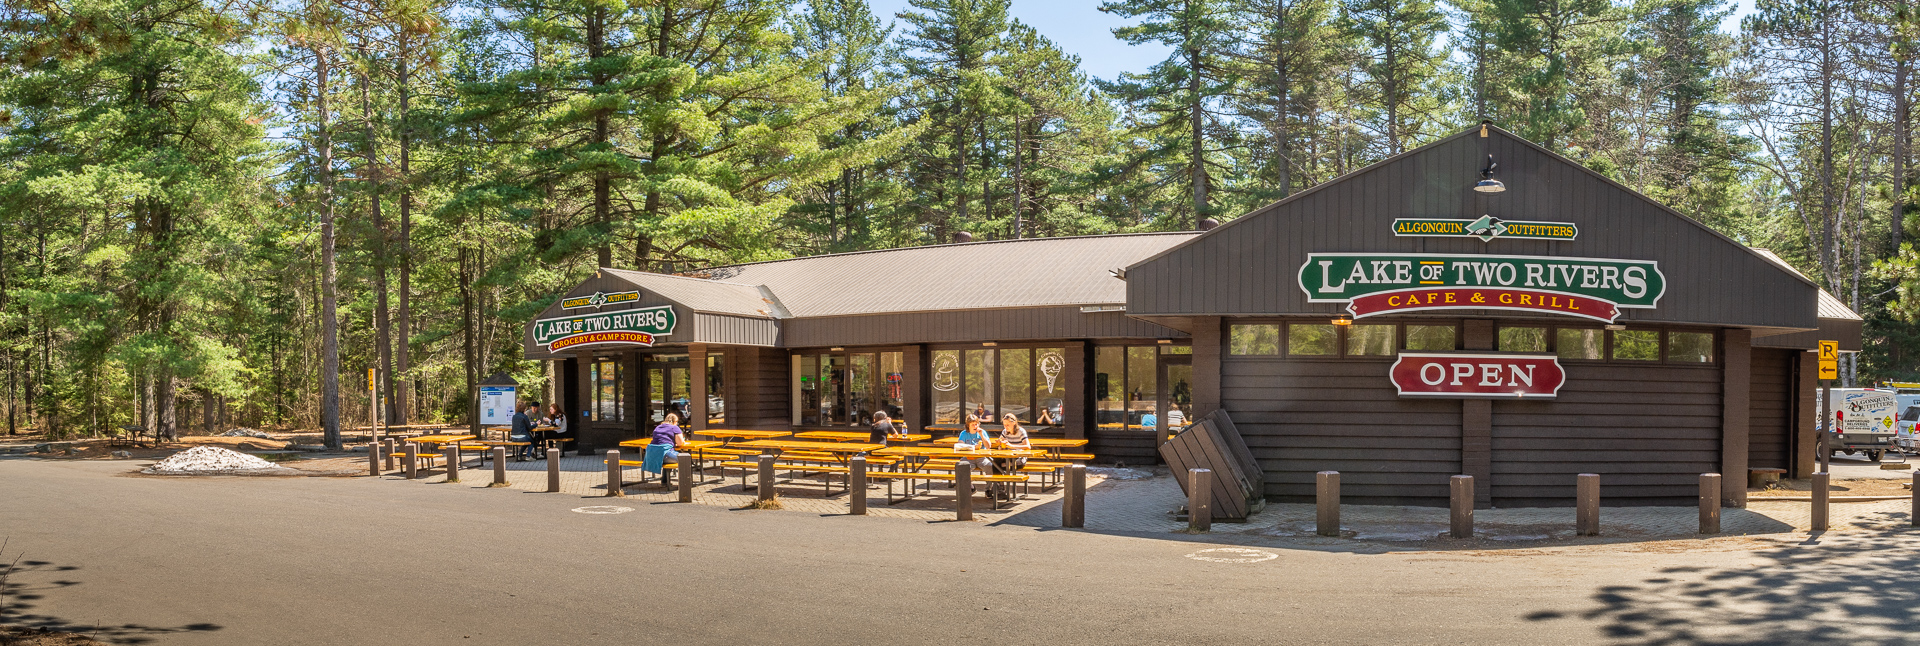 AO Lake of Two Rivers Store & Cafe